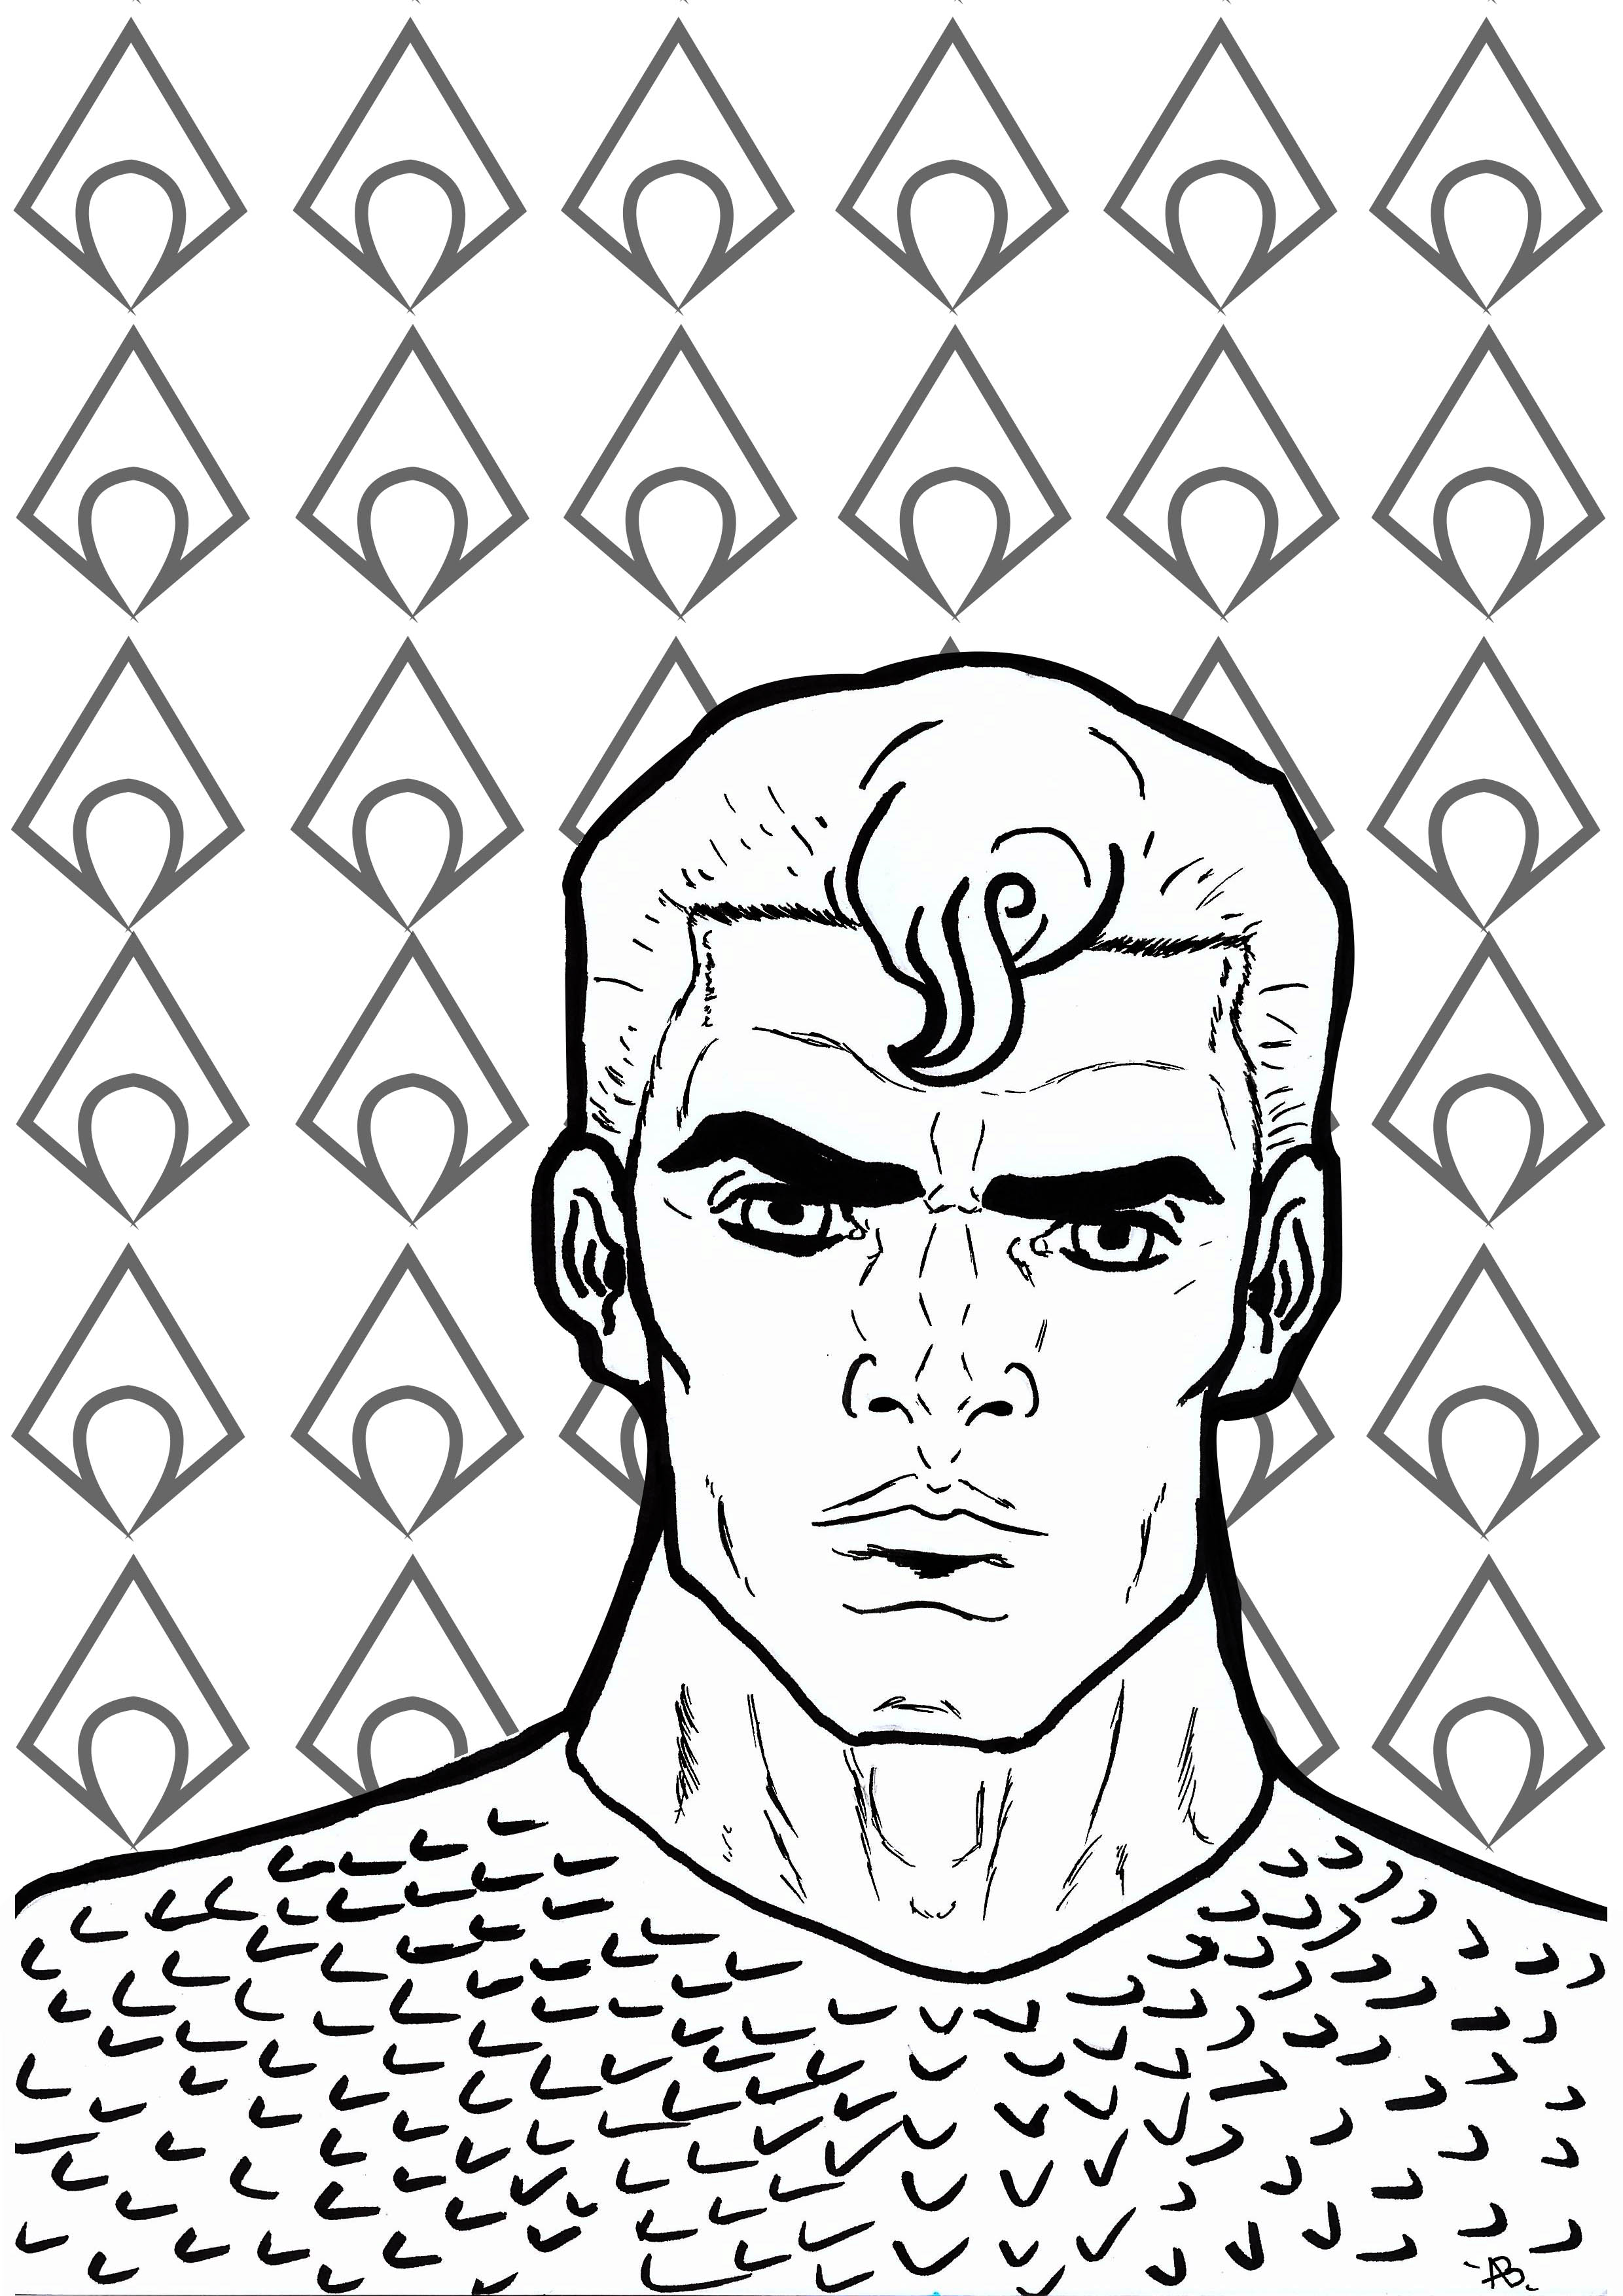 Coloring page inspired by Aquaman (DC Comics character)